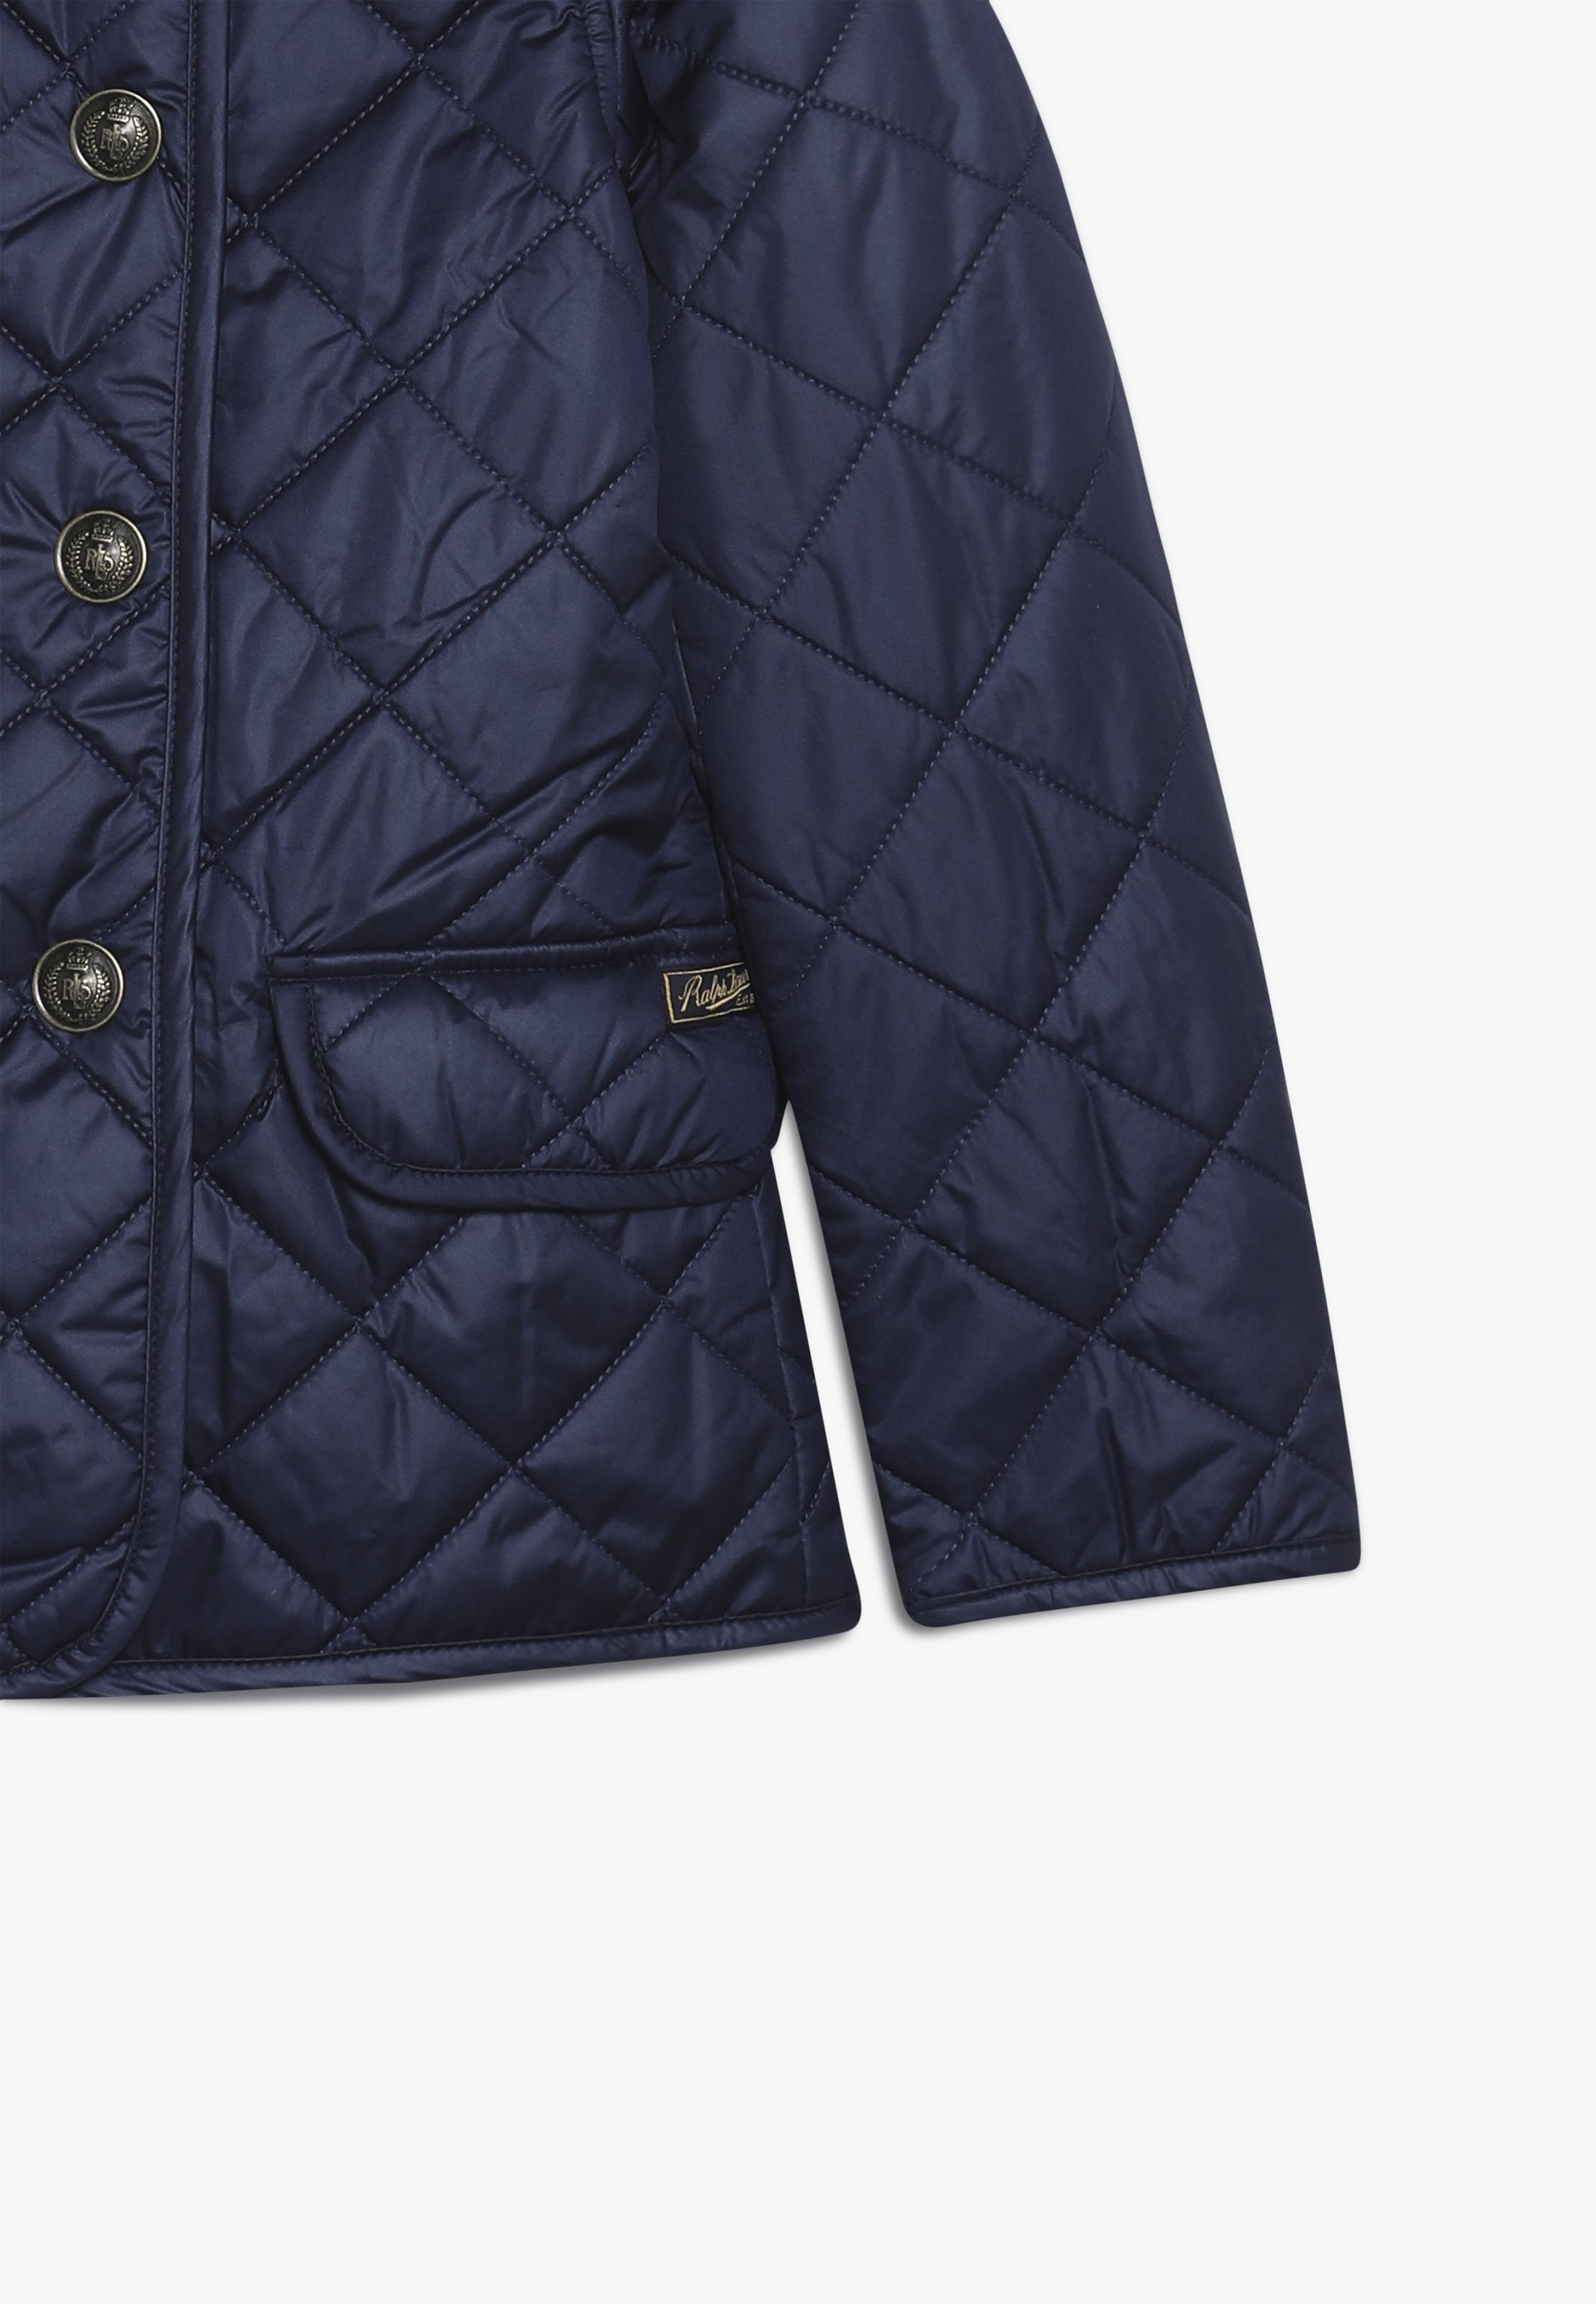 OUTERWEAR JACKET Vinterjacka french navy